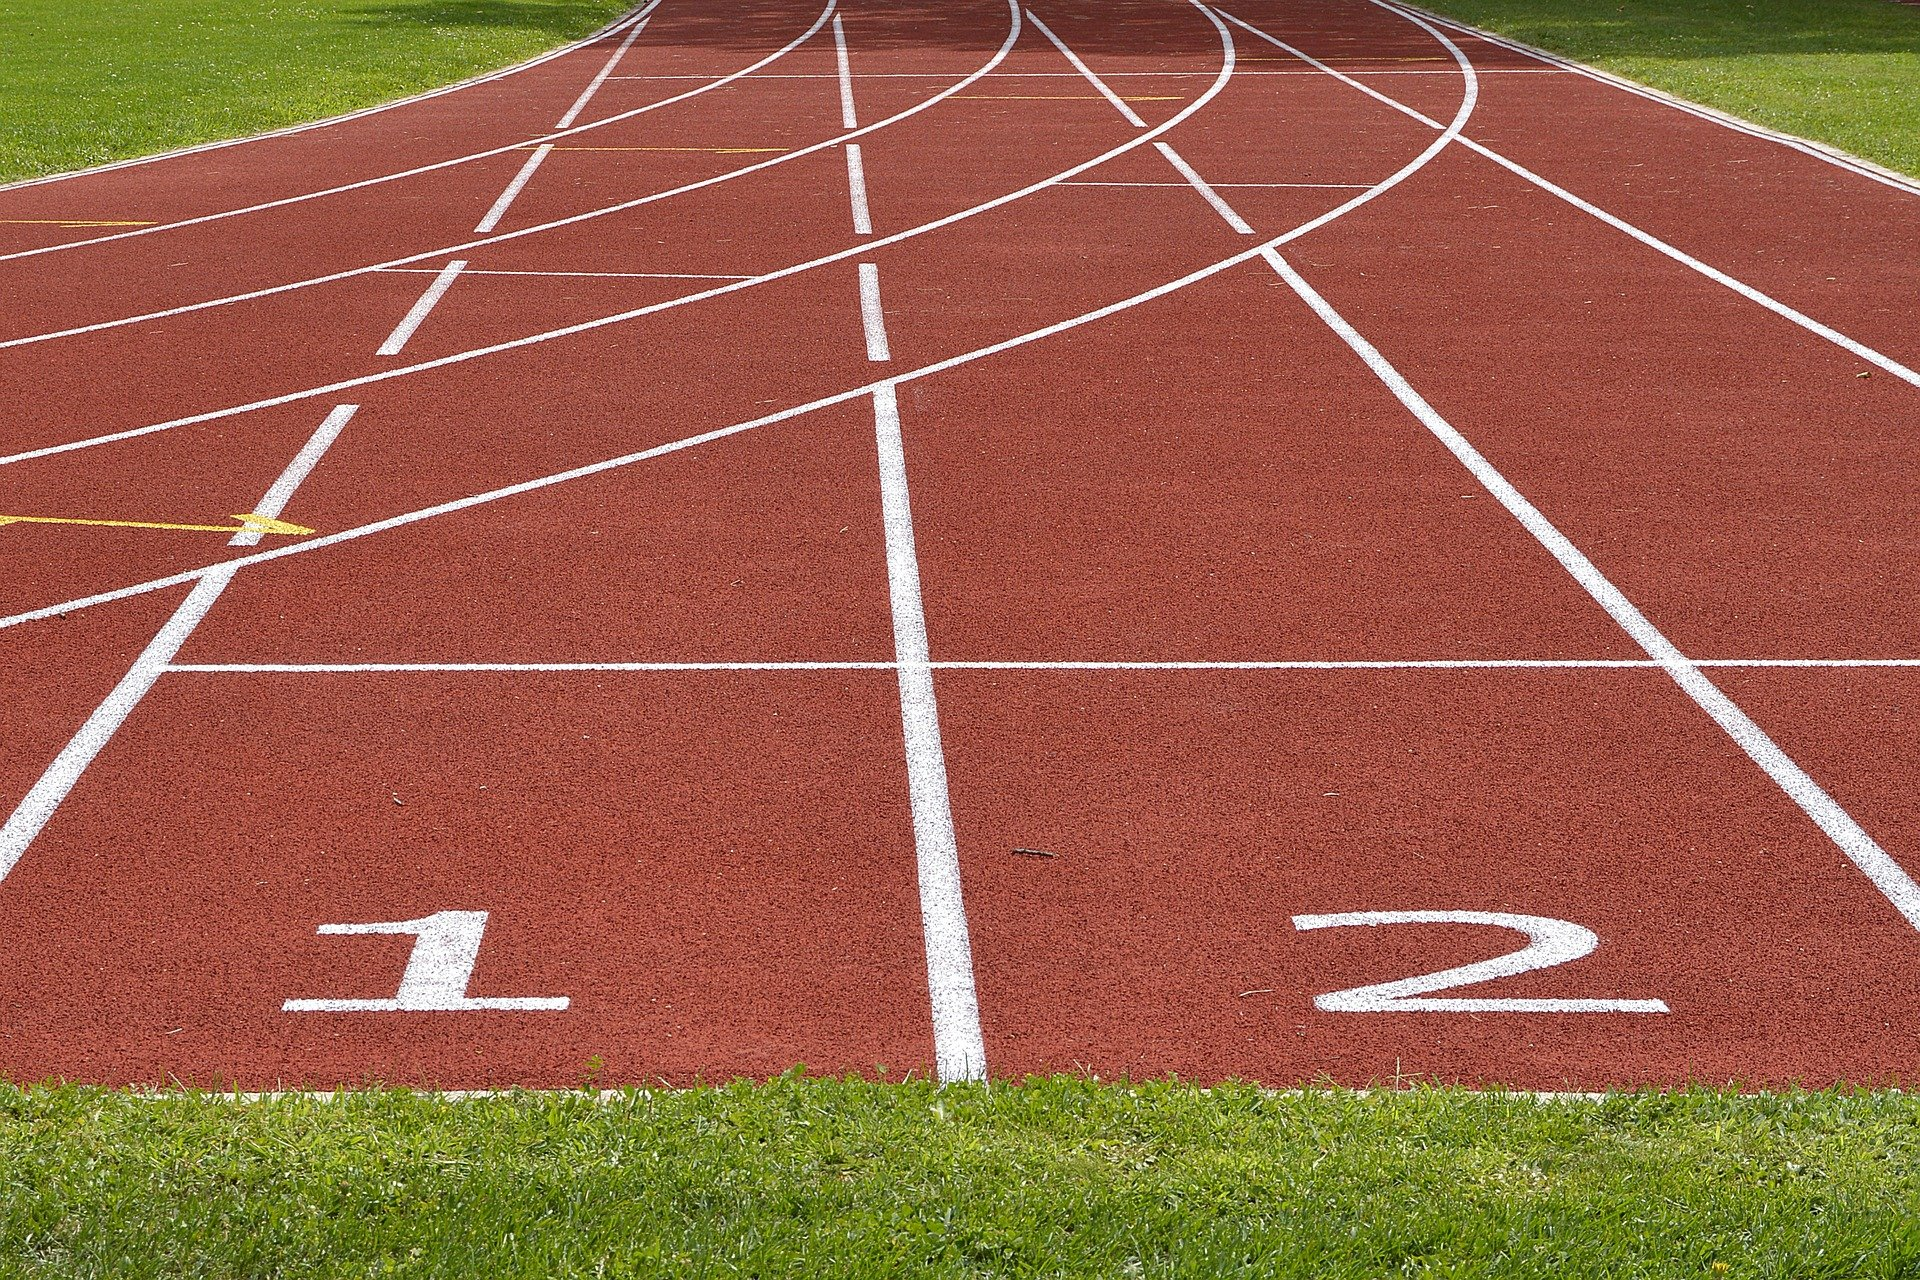 What was he doing with a long pole on the track field? | Photo: Pixabay/anncapictures